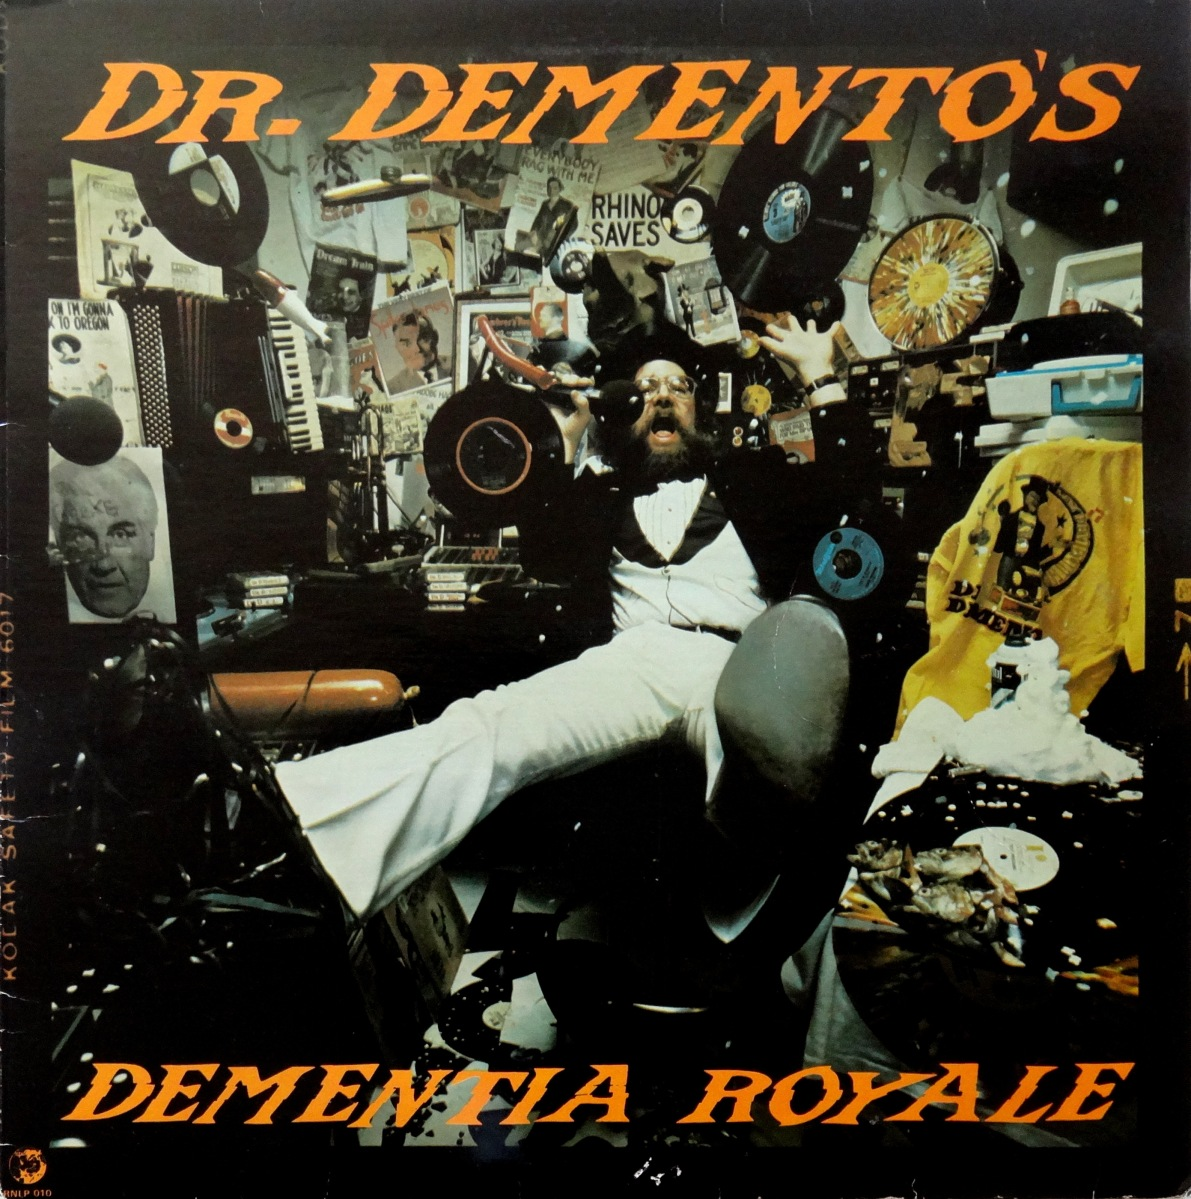 From The Stacks: 'Dr. Demento's Dementia Royale'